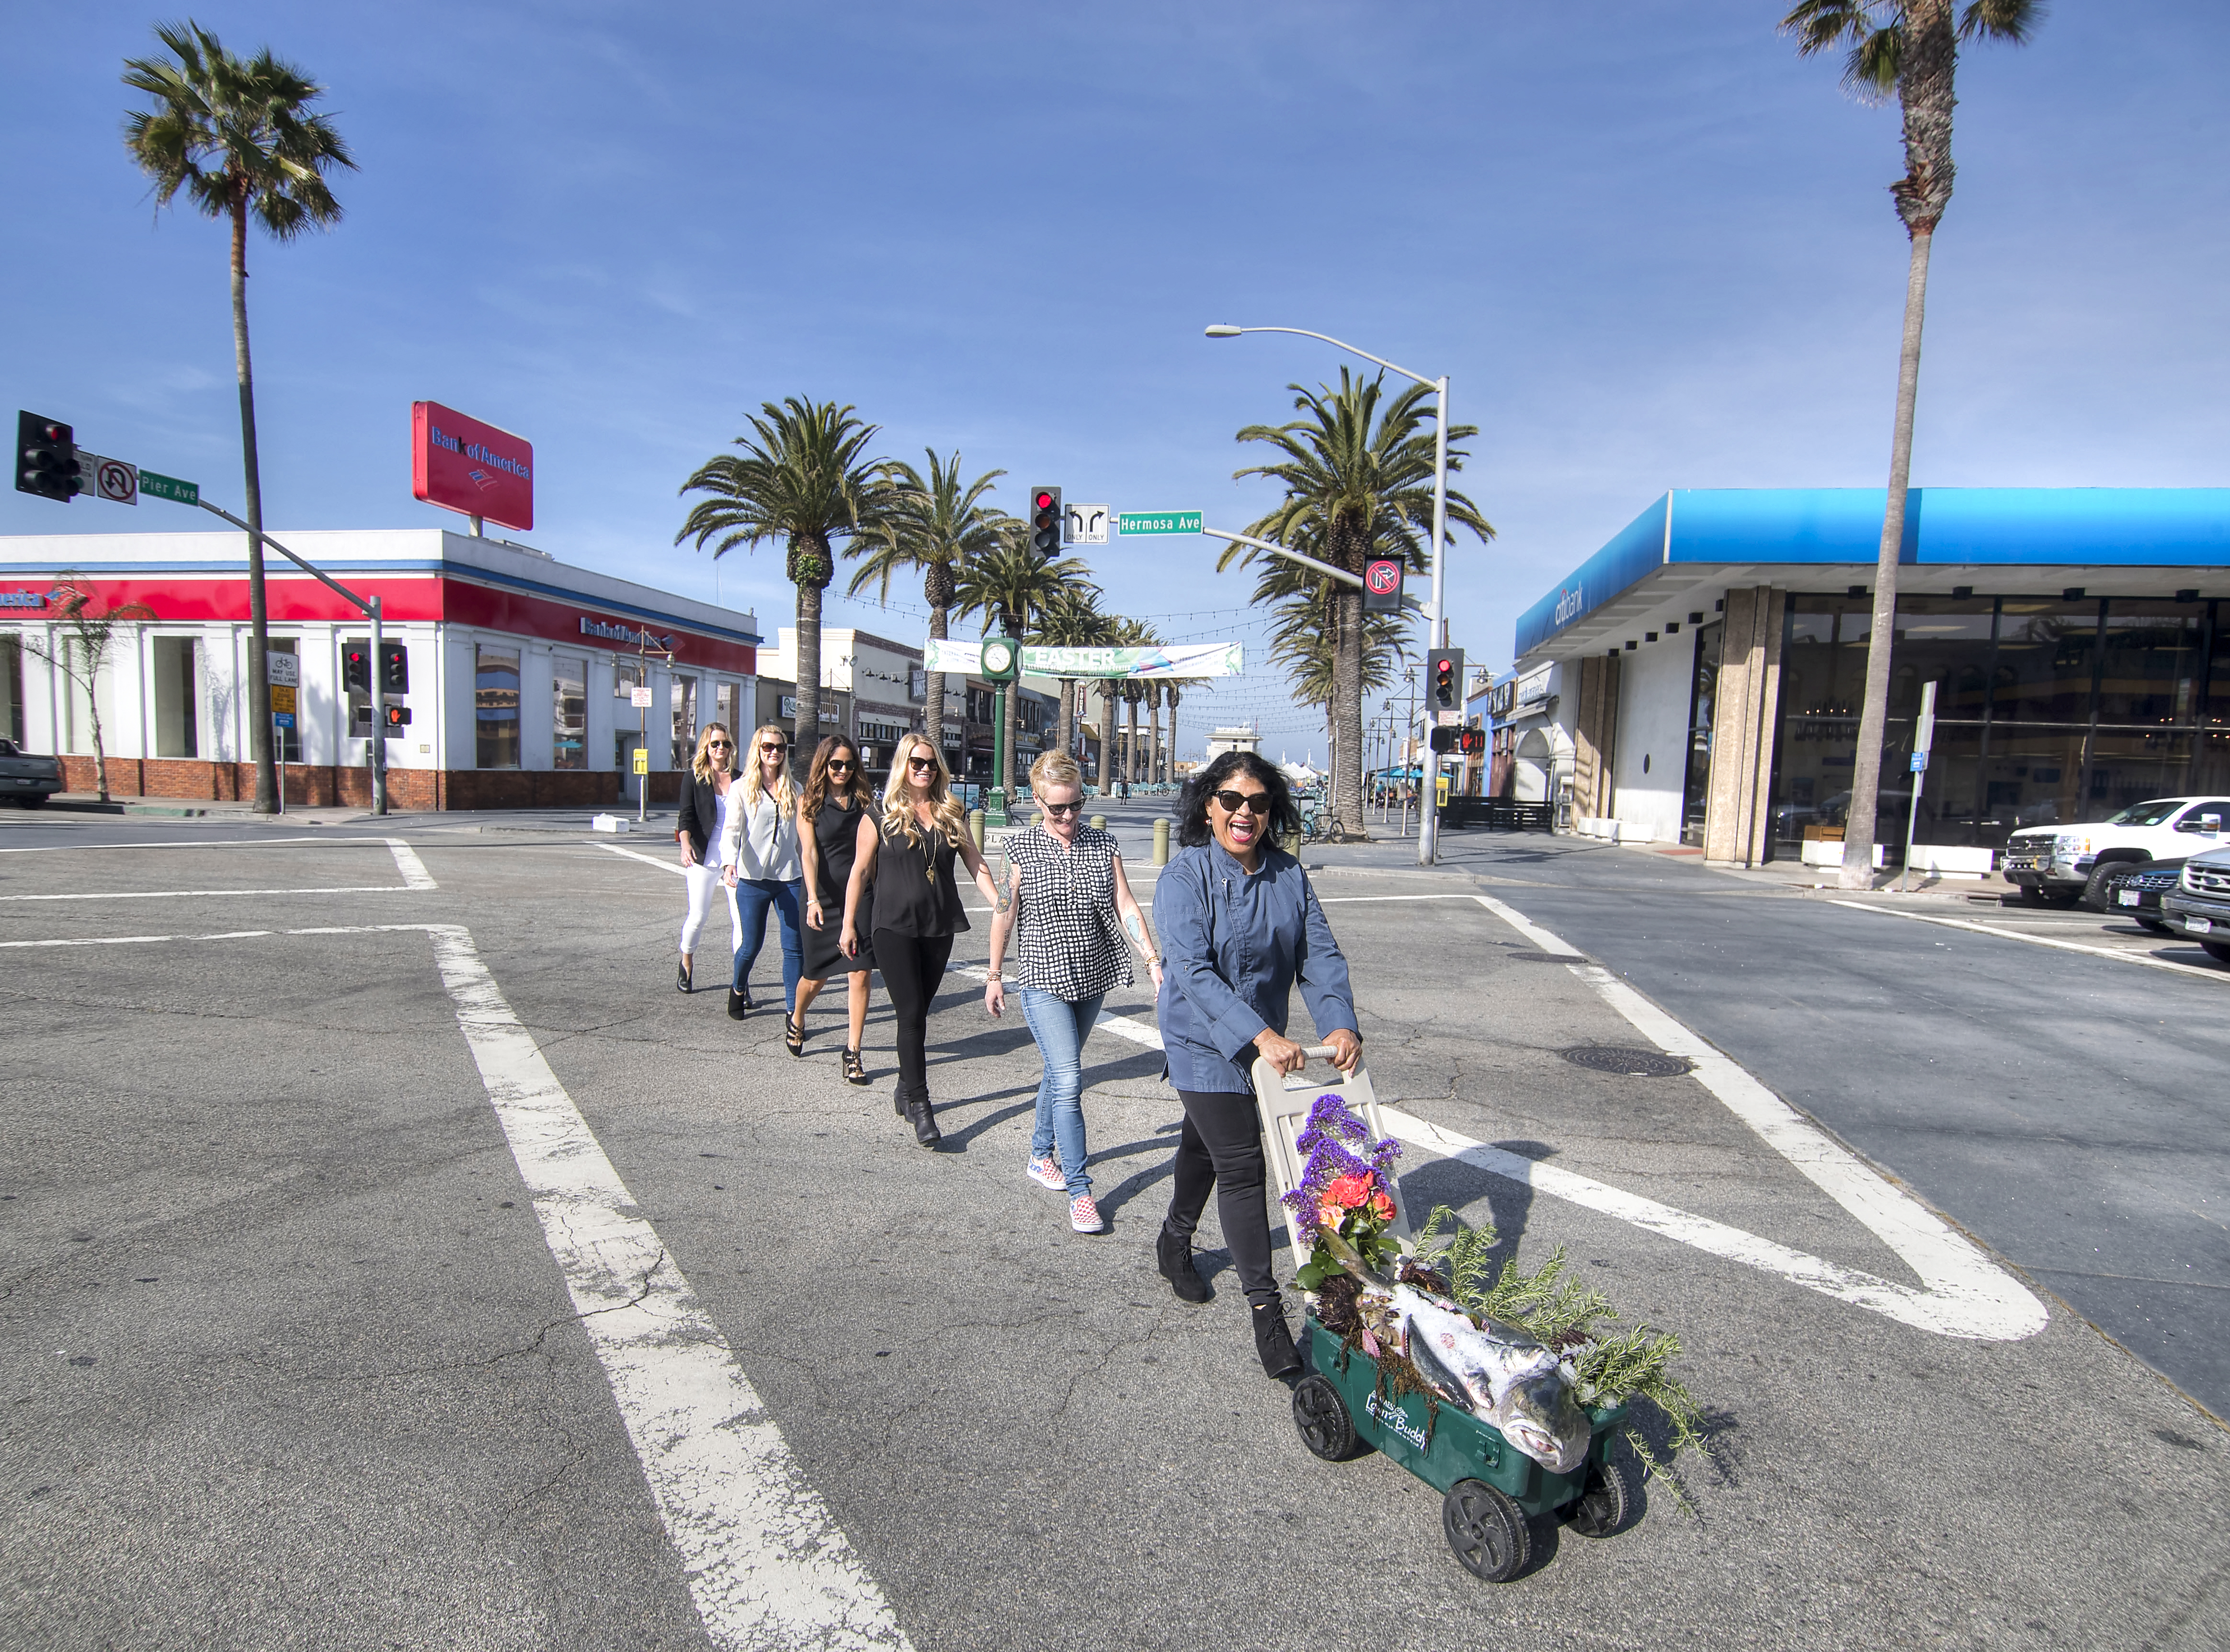 SHE'S IN CHARGE: Women restaurateurs in Hermosa Beach are owning the game